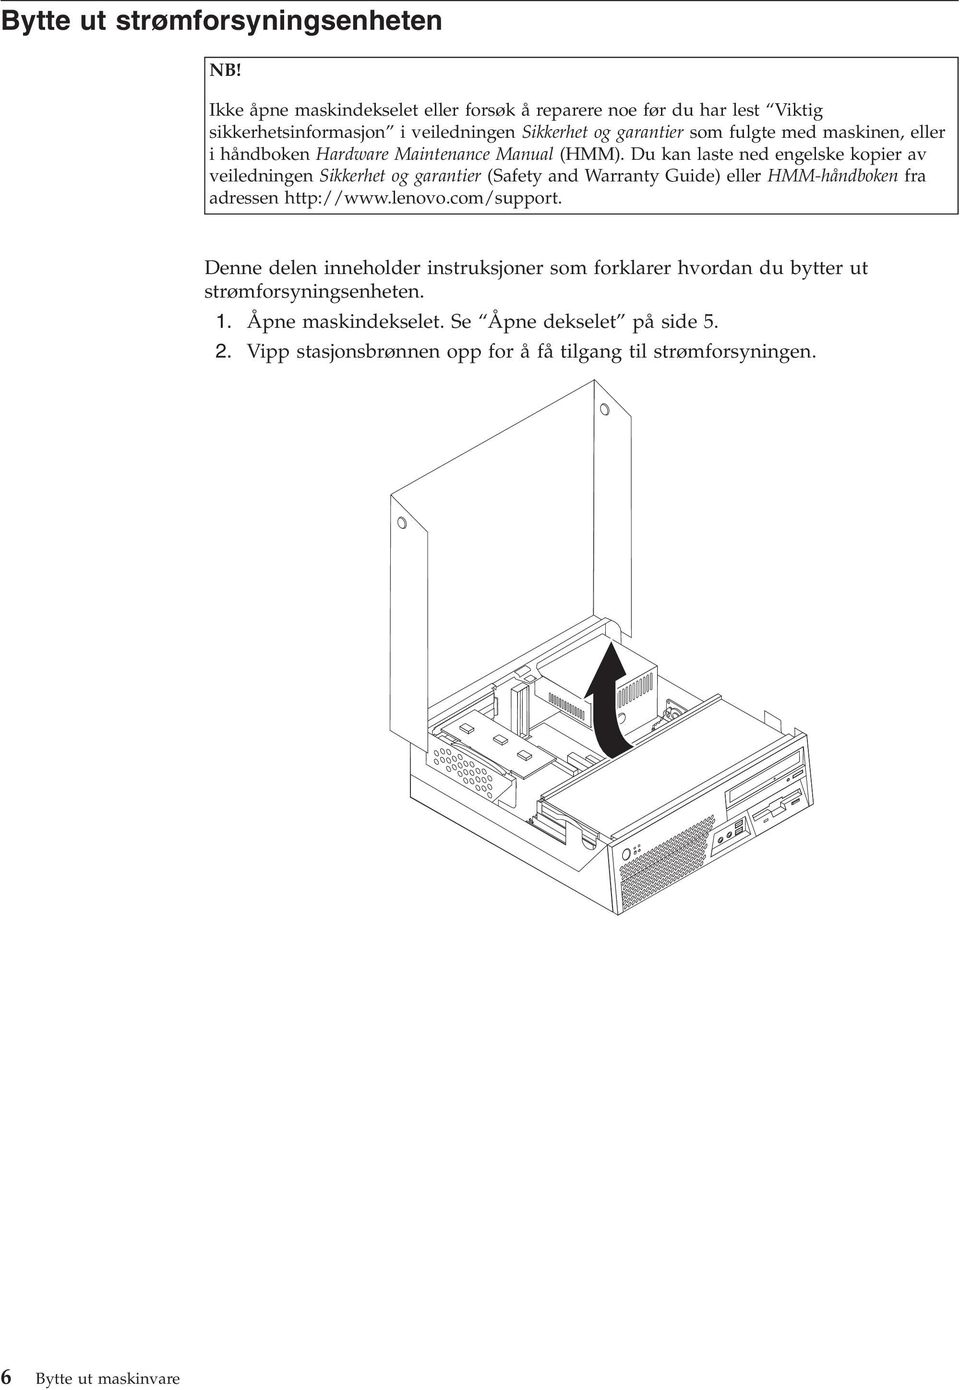 eller i håndboken Hardware Maintenance Manual (HMM).